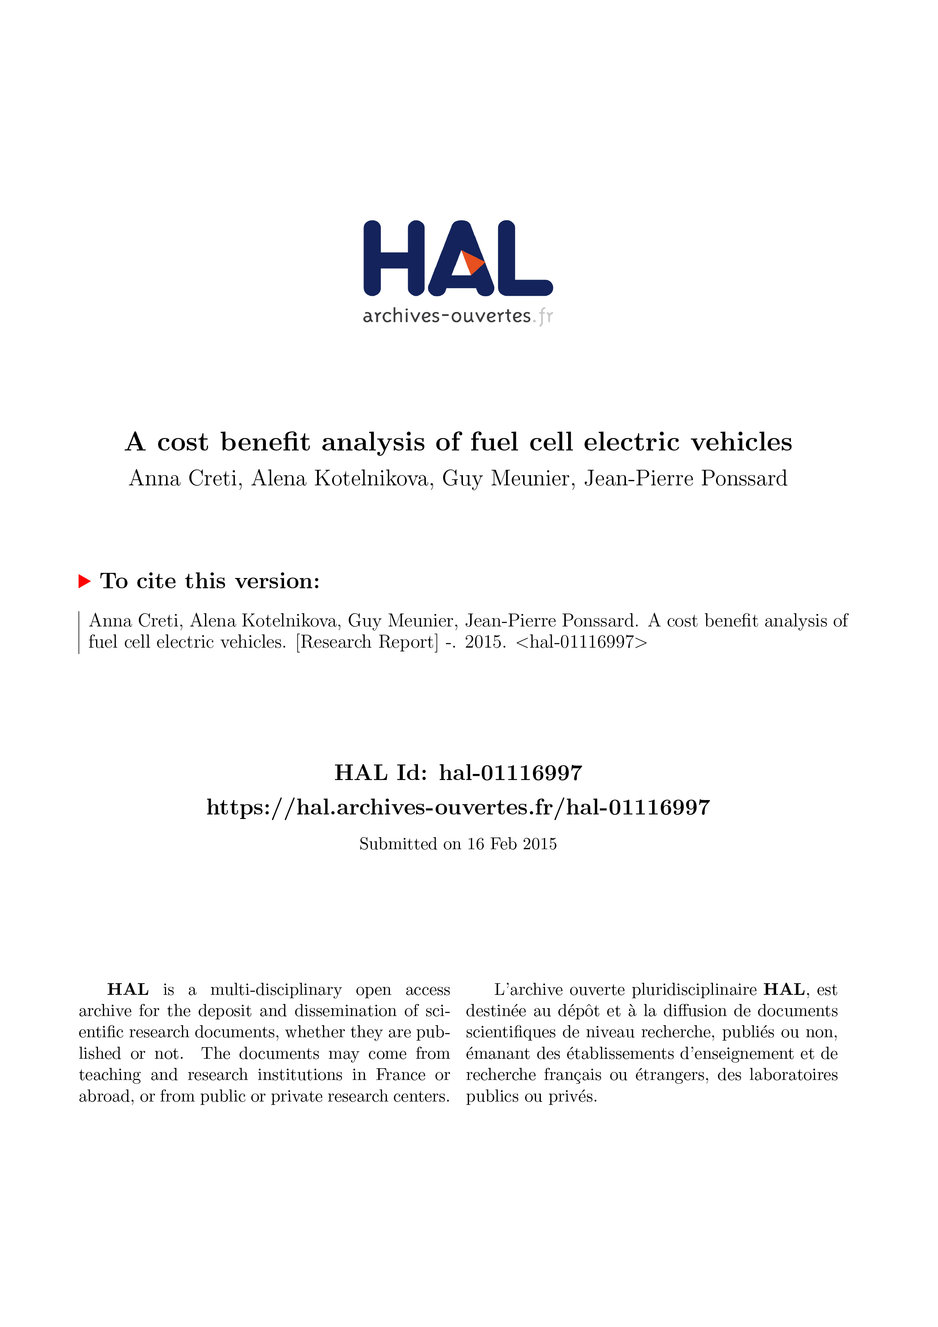 A cost benefit analysis of fuel cell electric vehicles